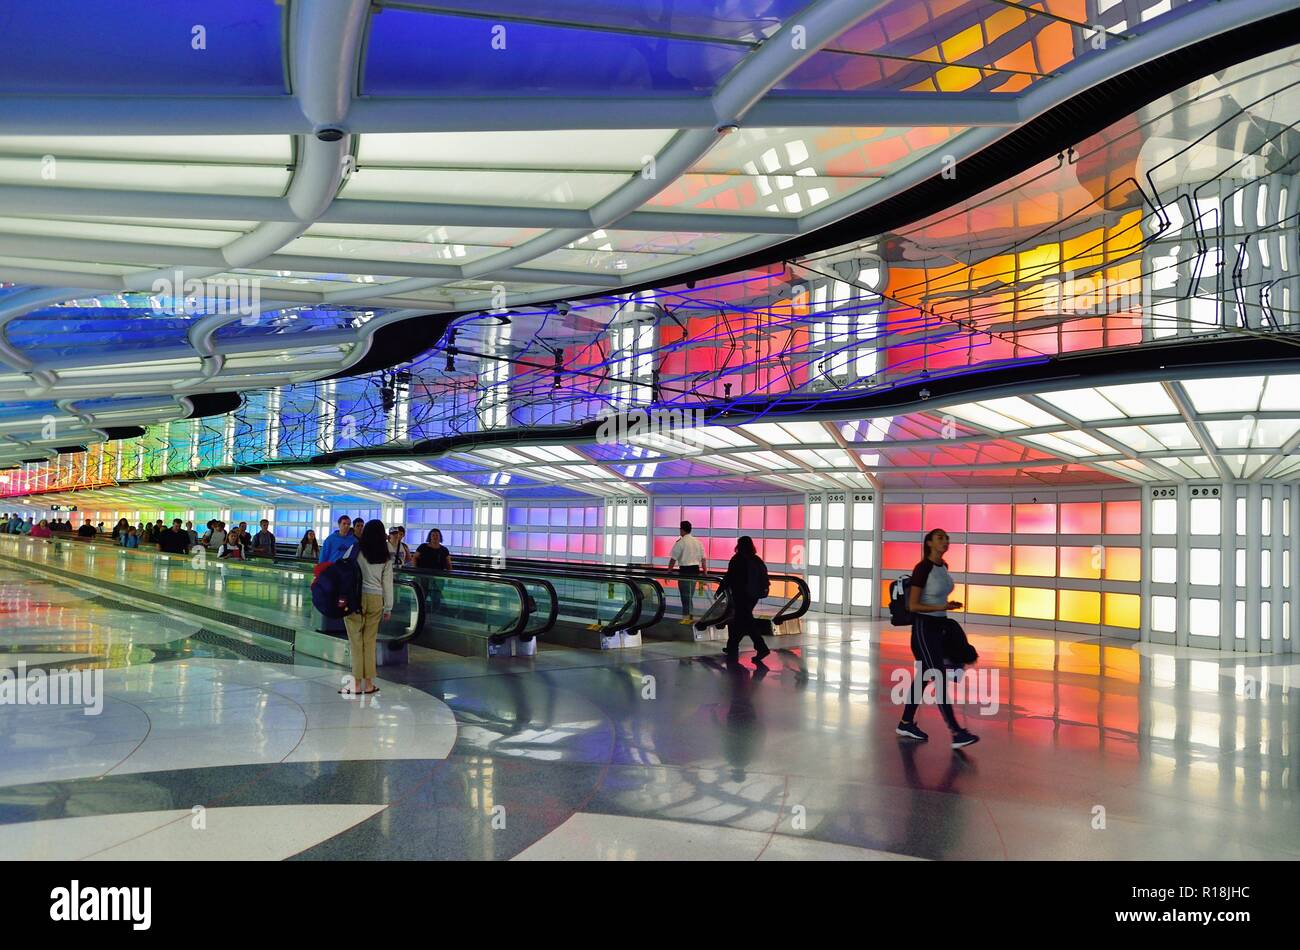 Chicago, Illinois, USA. The colorfully appointed tunnel passageway connecting two United Airlines terminals at O'Hare International Airport. - Stock Image